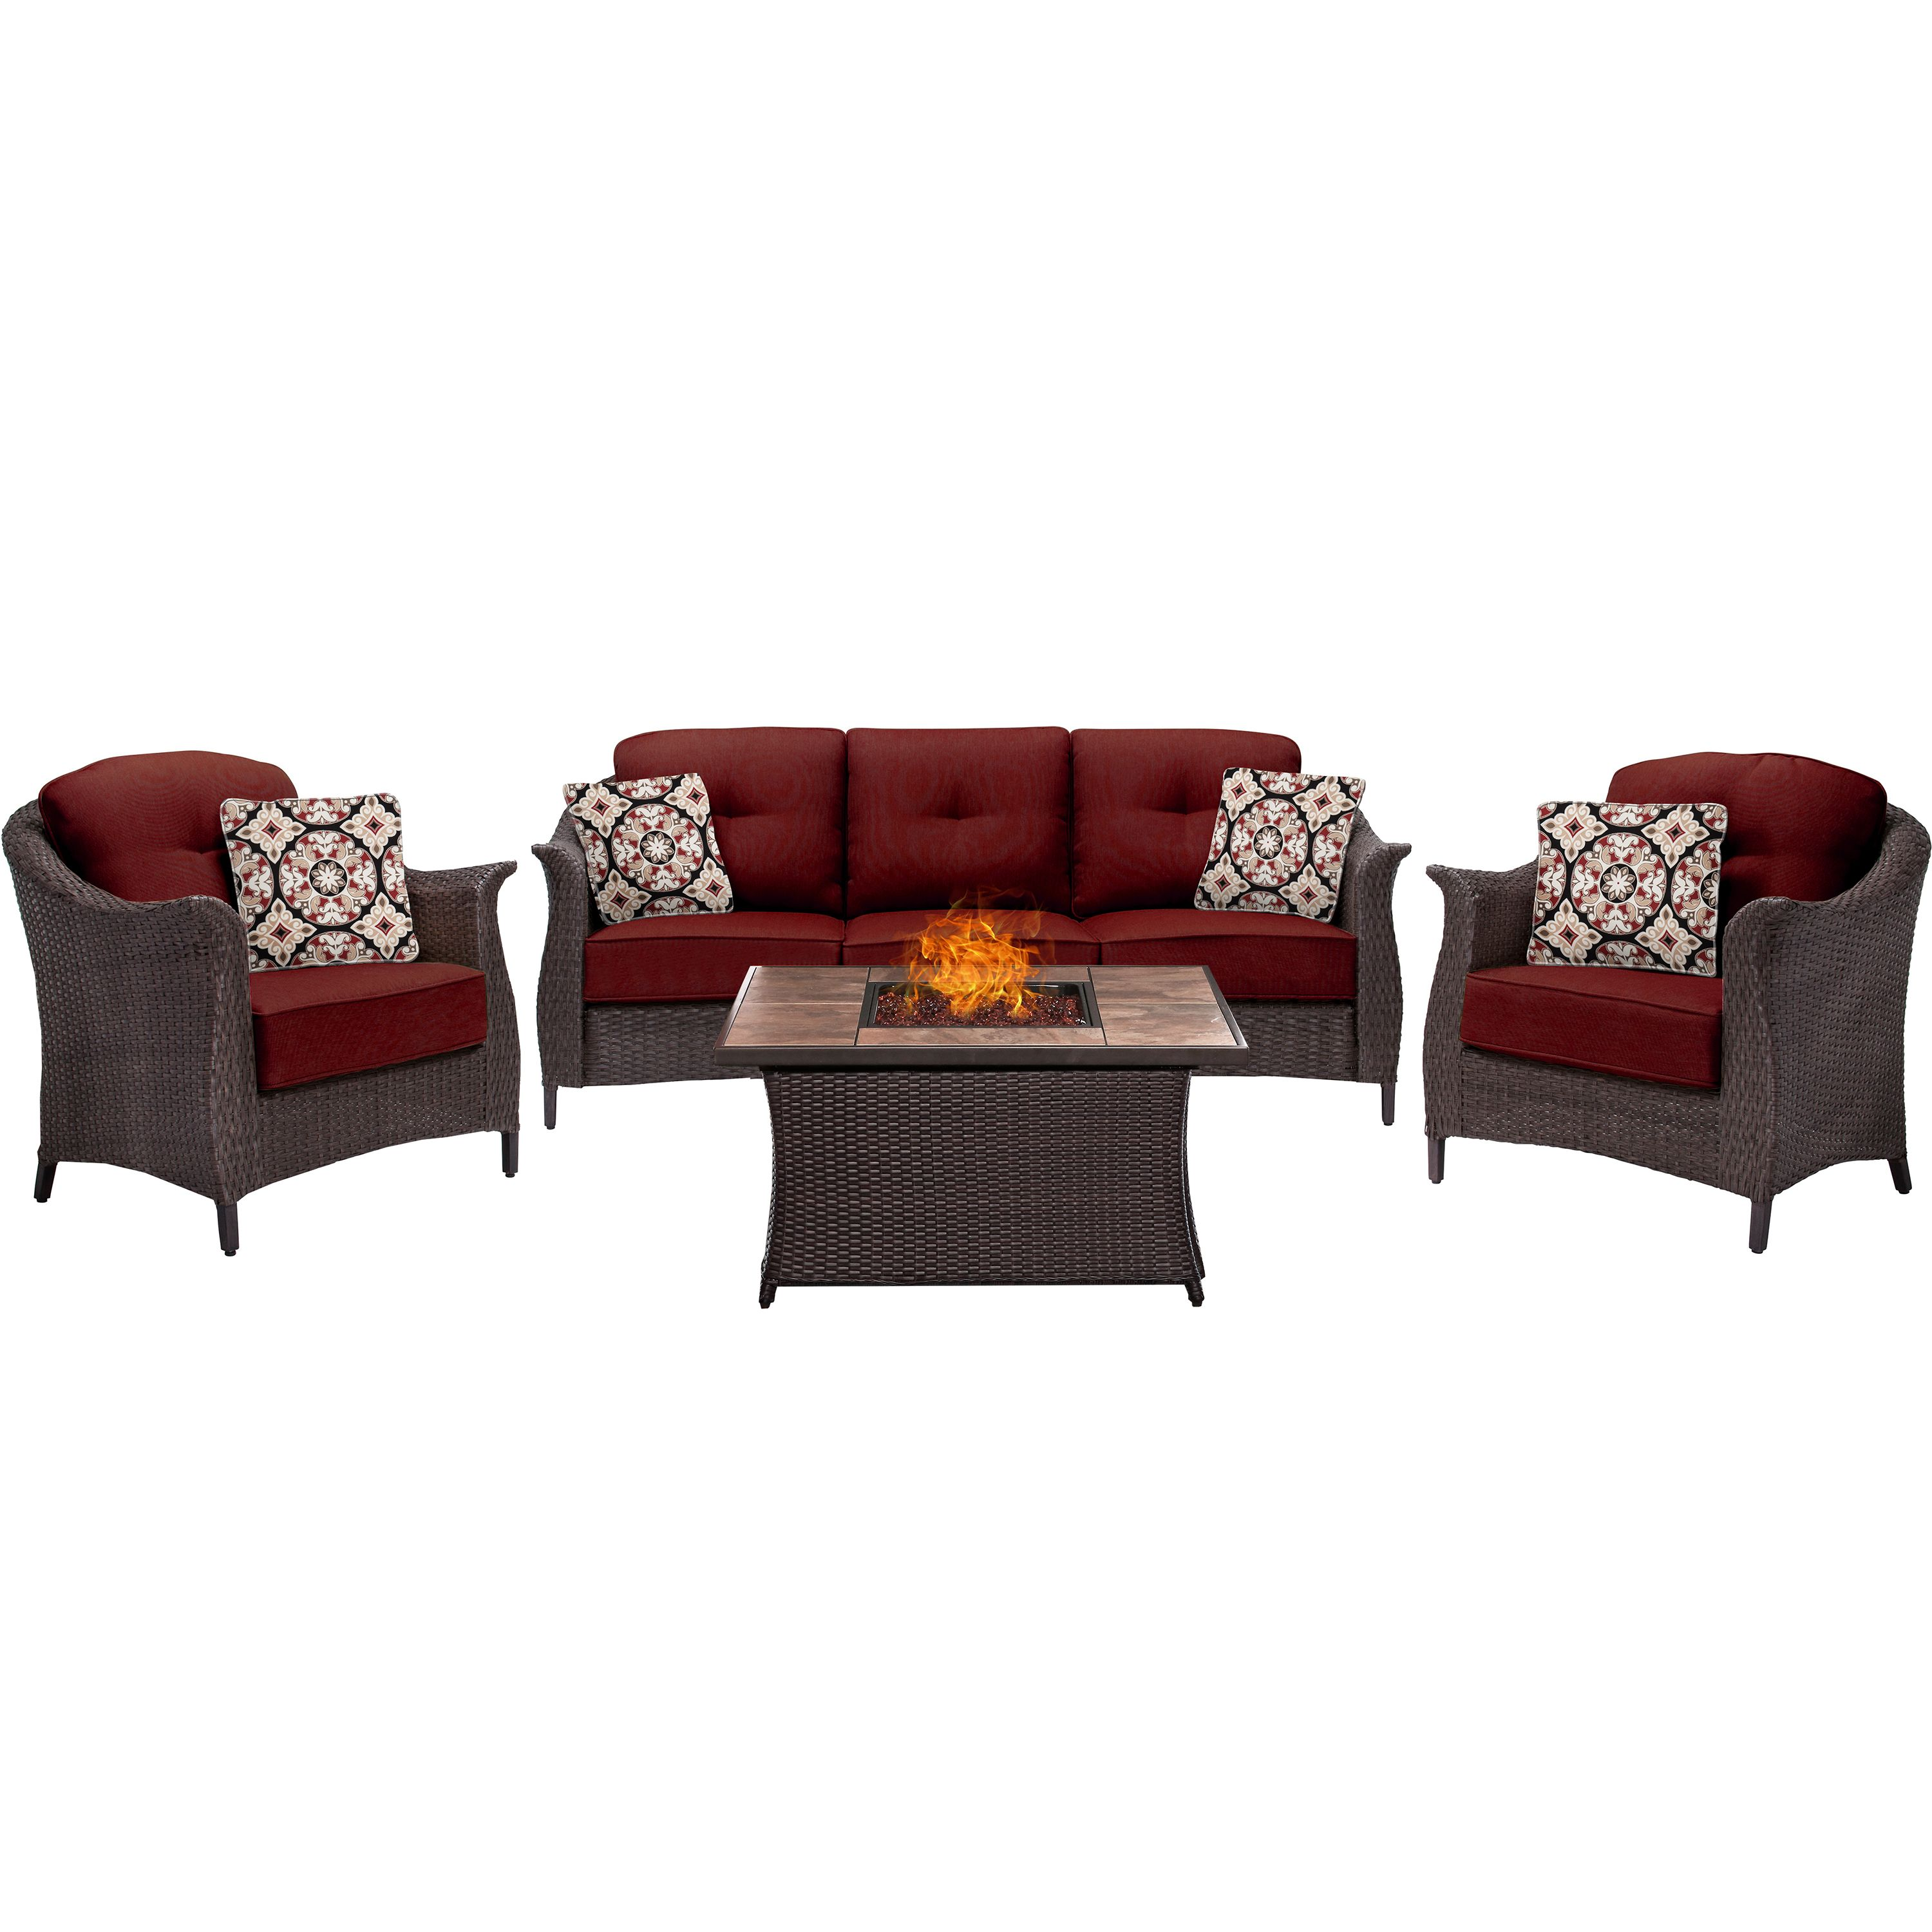 gramercy 4 piece woven fire pit set with tan porcelain tile top in